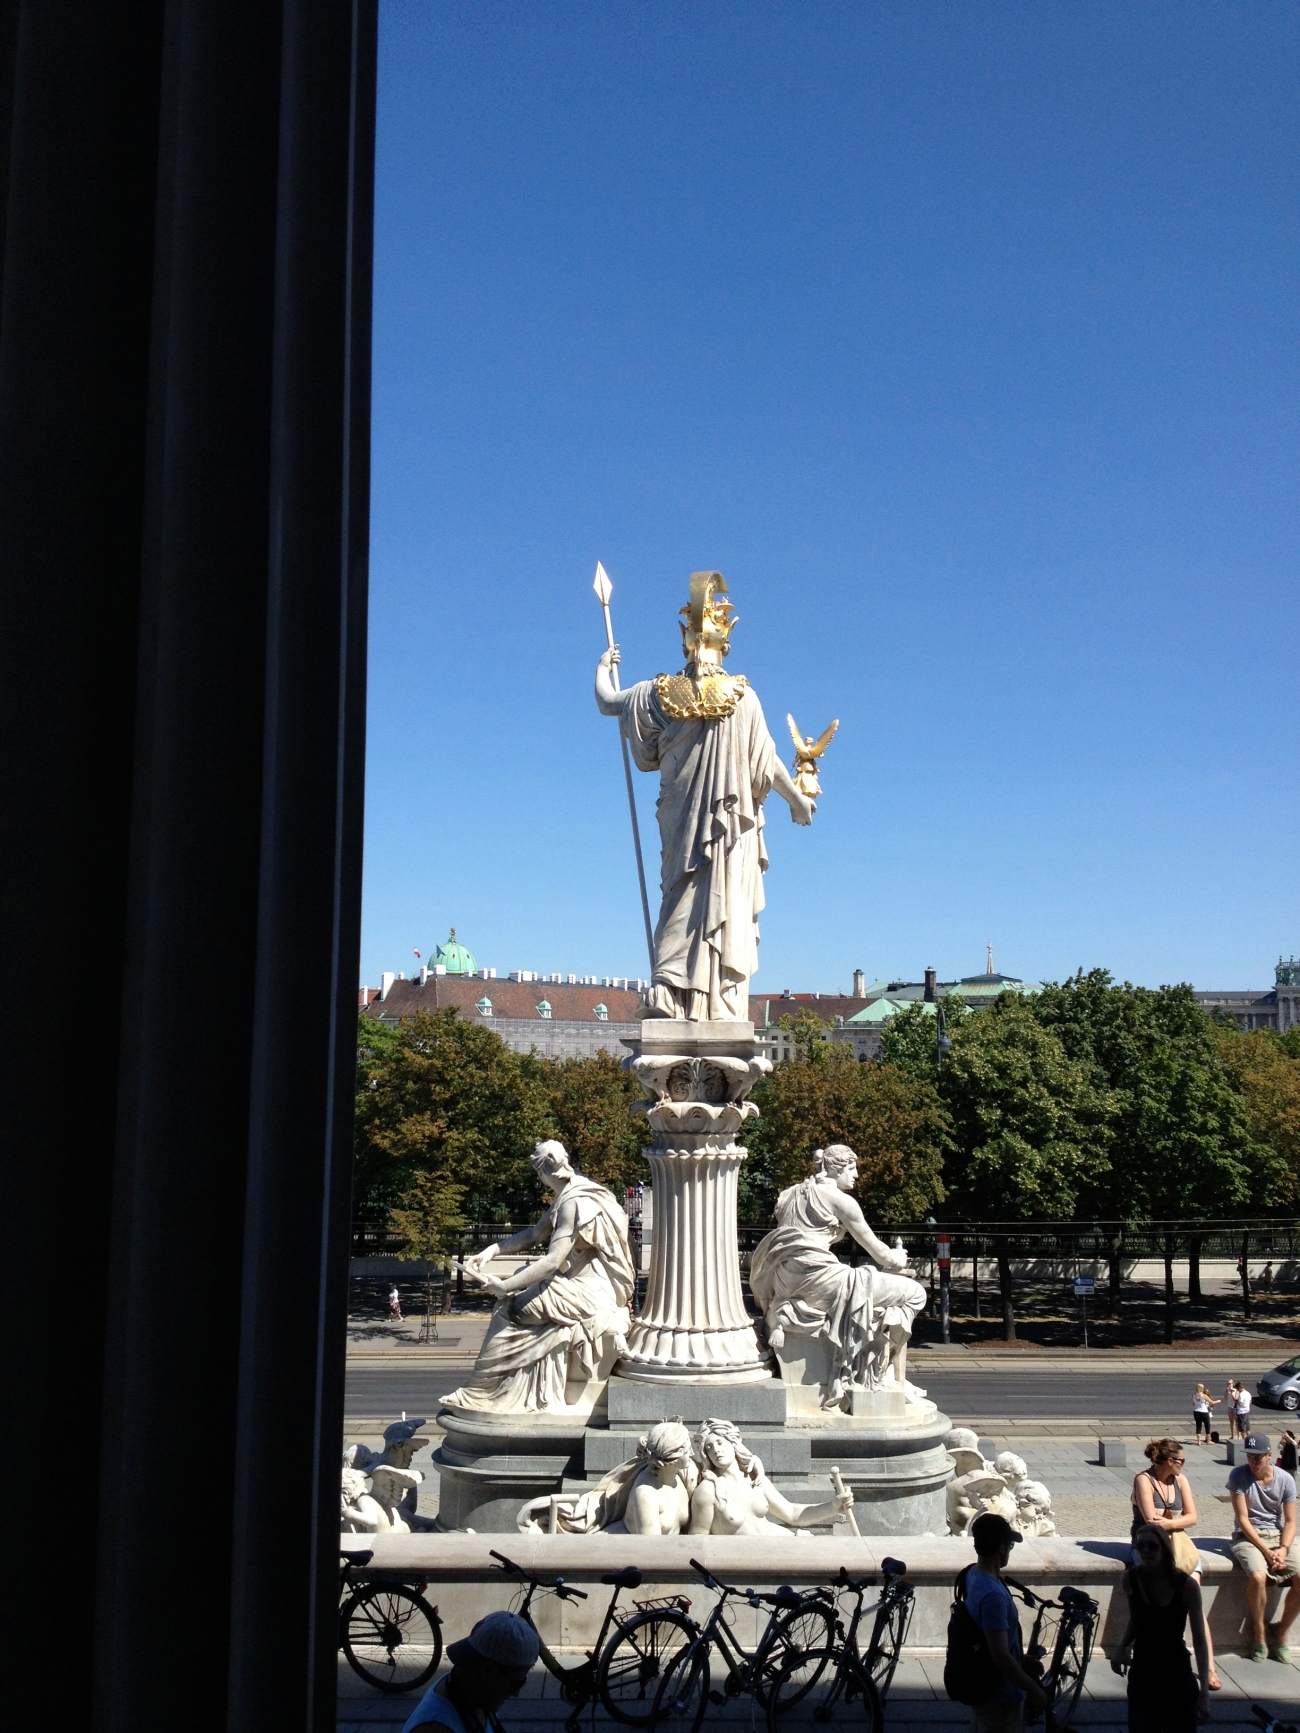 Athena agrees that Vienna is a great looking city.